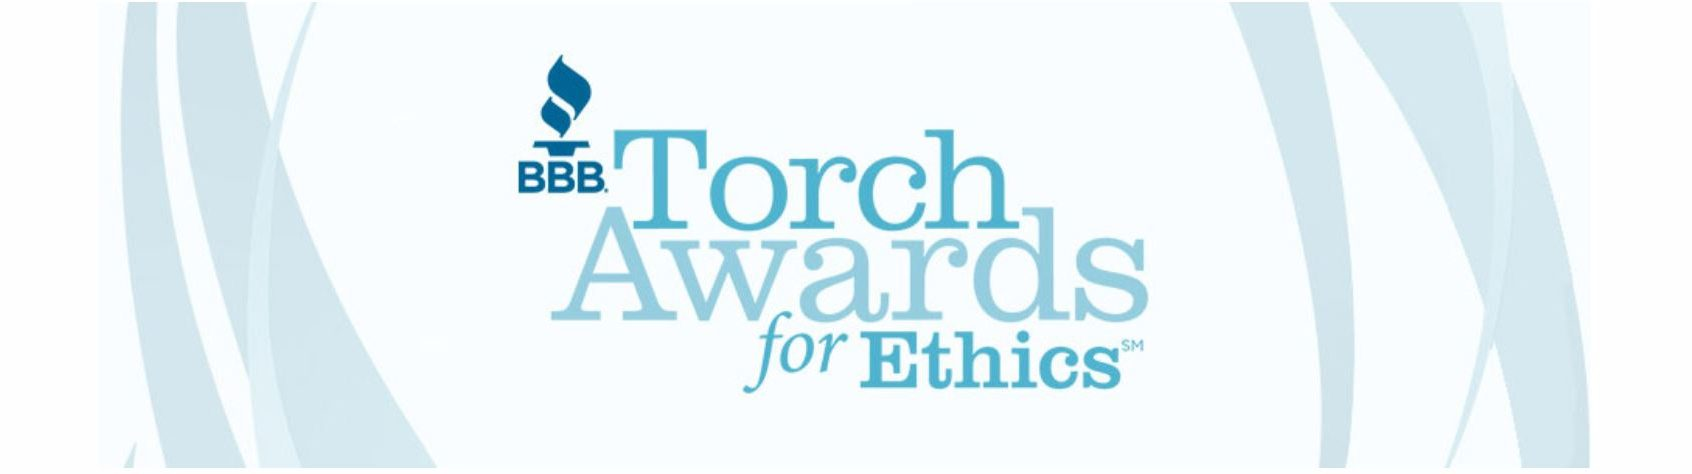 2019 BBB Torch Awards for Ethics Winner